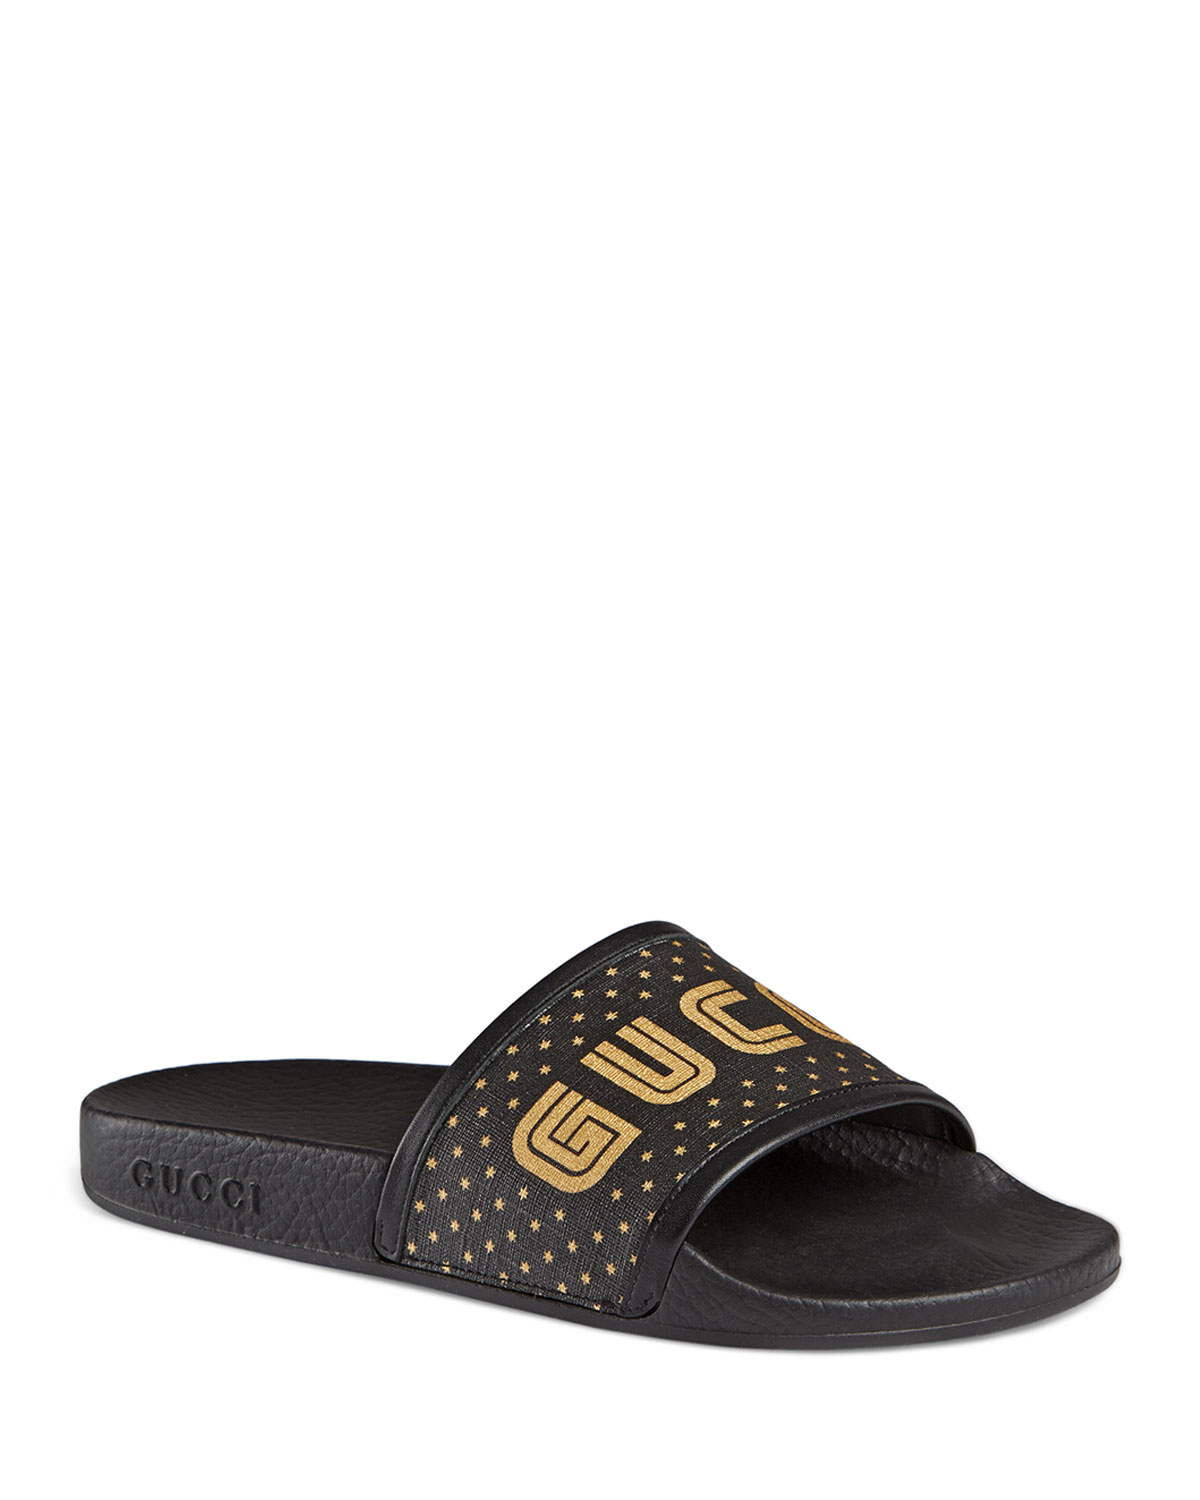 6774a3925bda7 Gucci Pursuit Guccy Slide